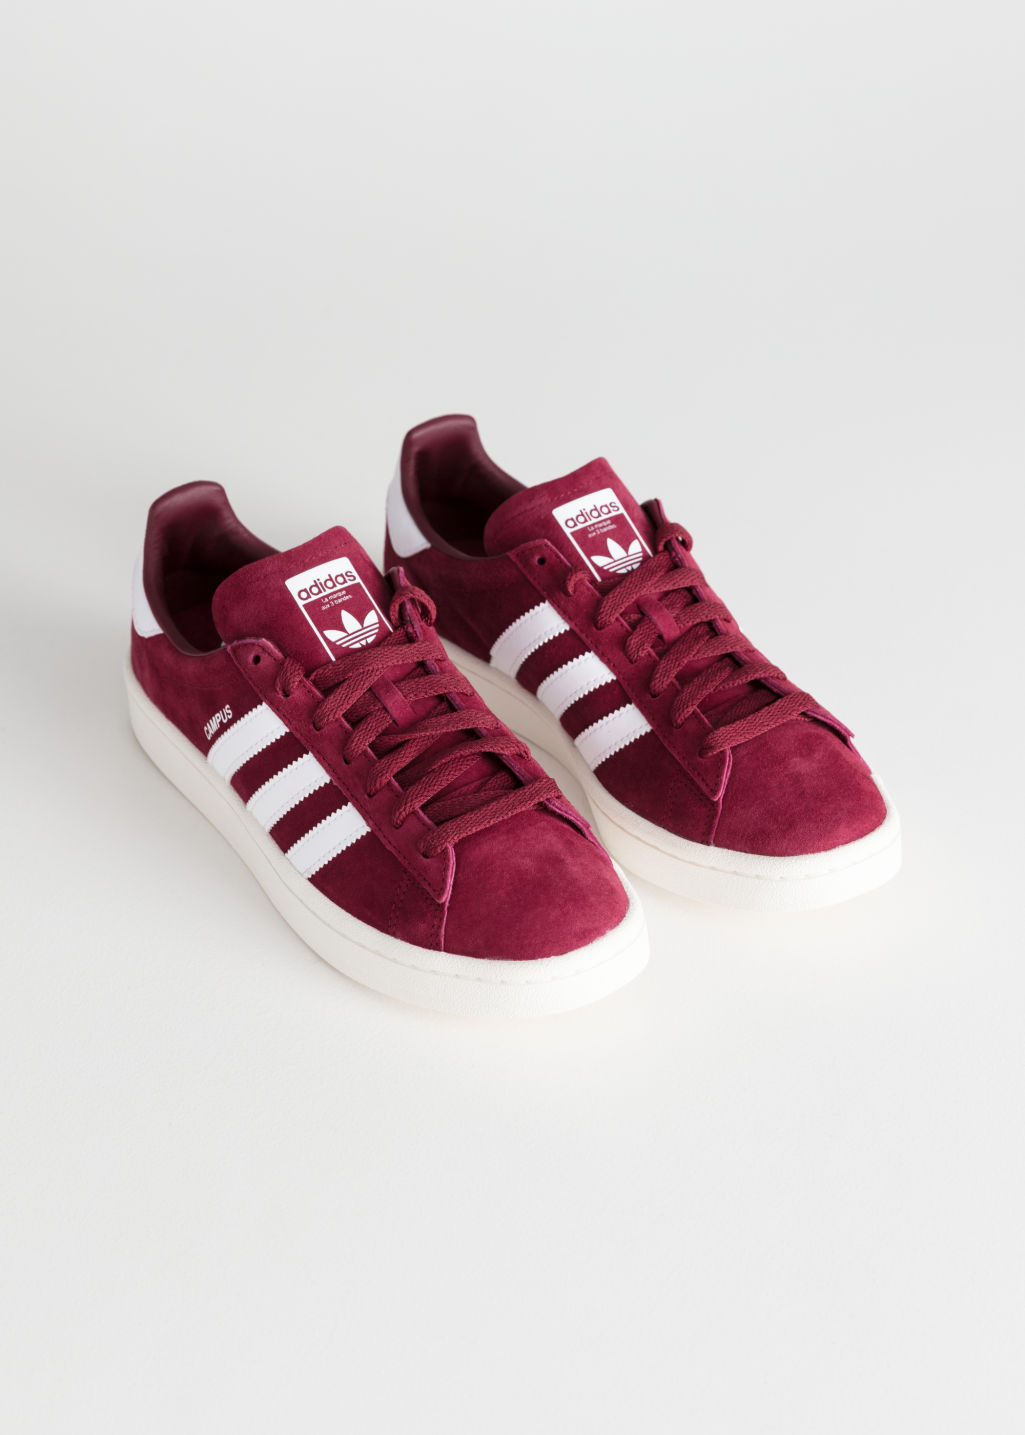 nouveau style ebb0d bbfd5 adidas Campus - Red - Adidas - & Other Stories